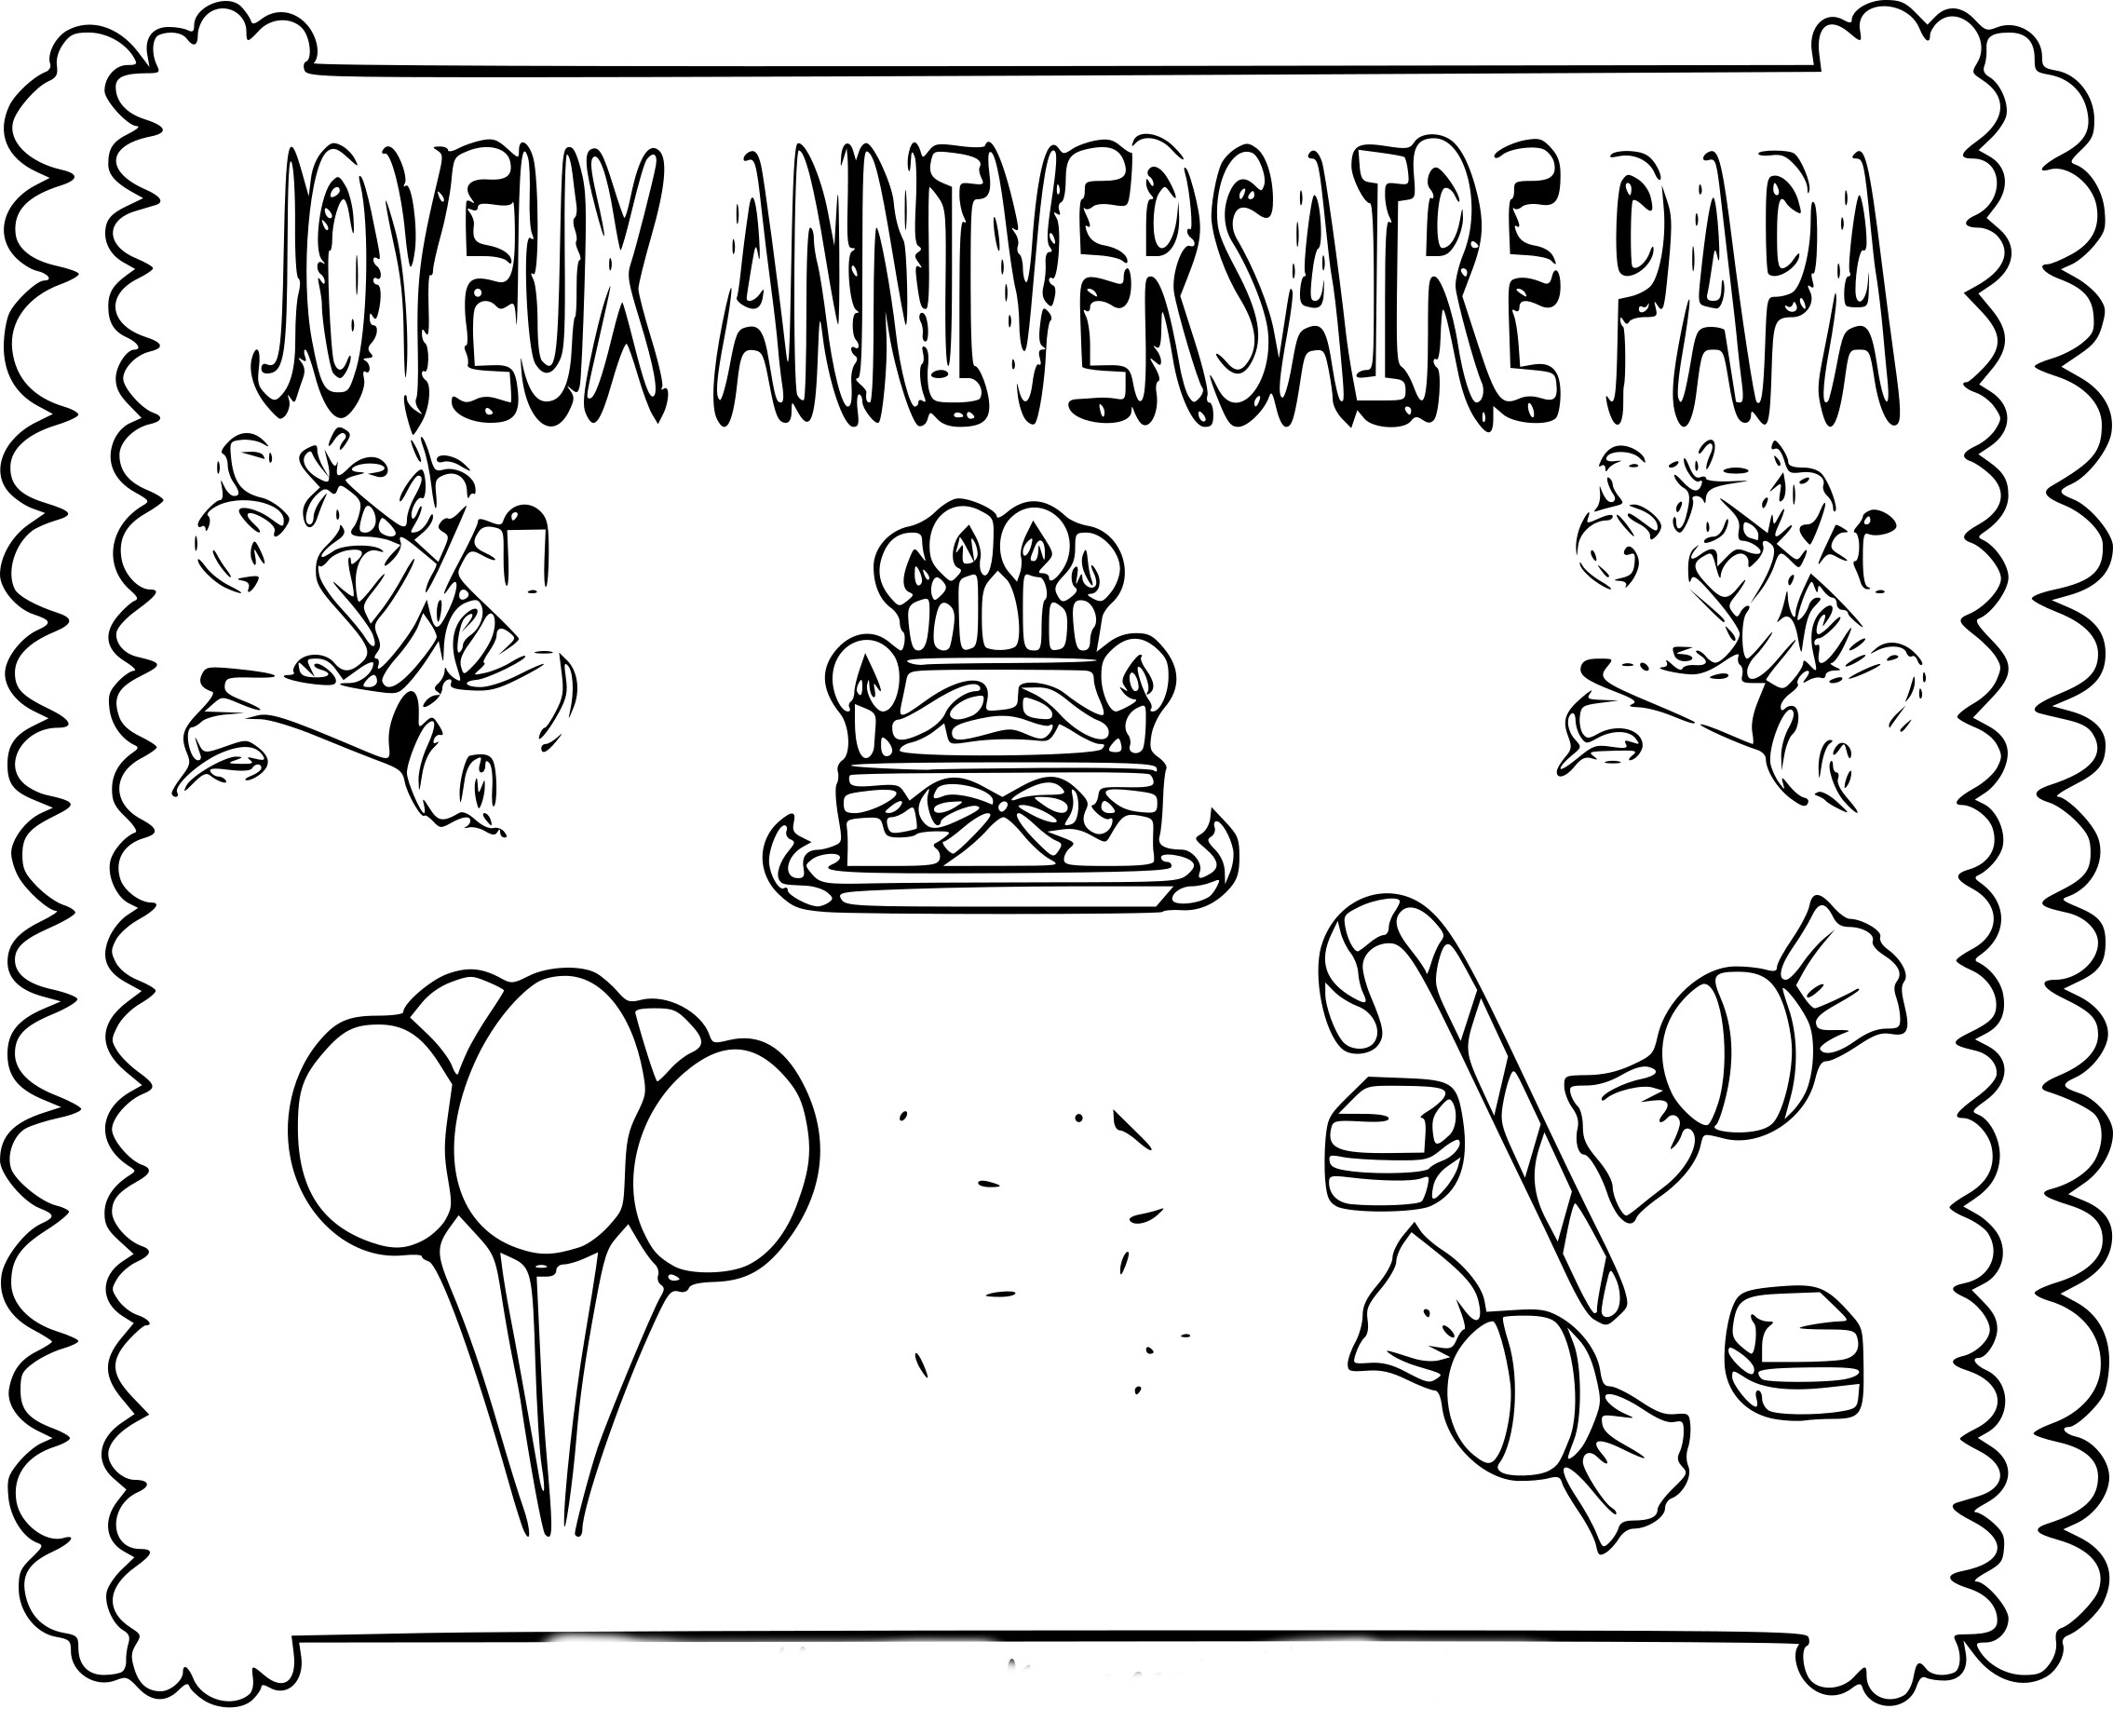 coloriage joyeux anniversaire papa imprimer sur coloriages info. Black Bedroom Furniture Sets. Home Design Ideas